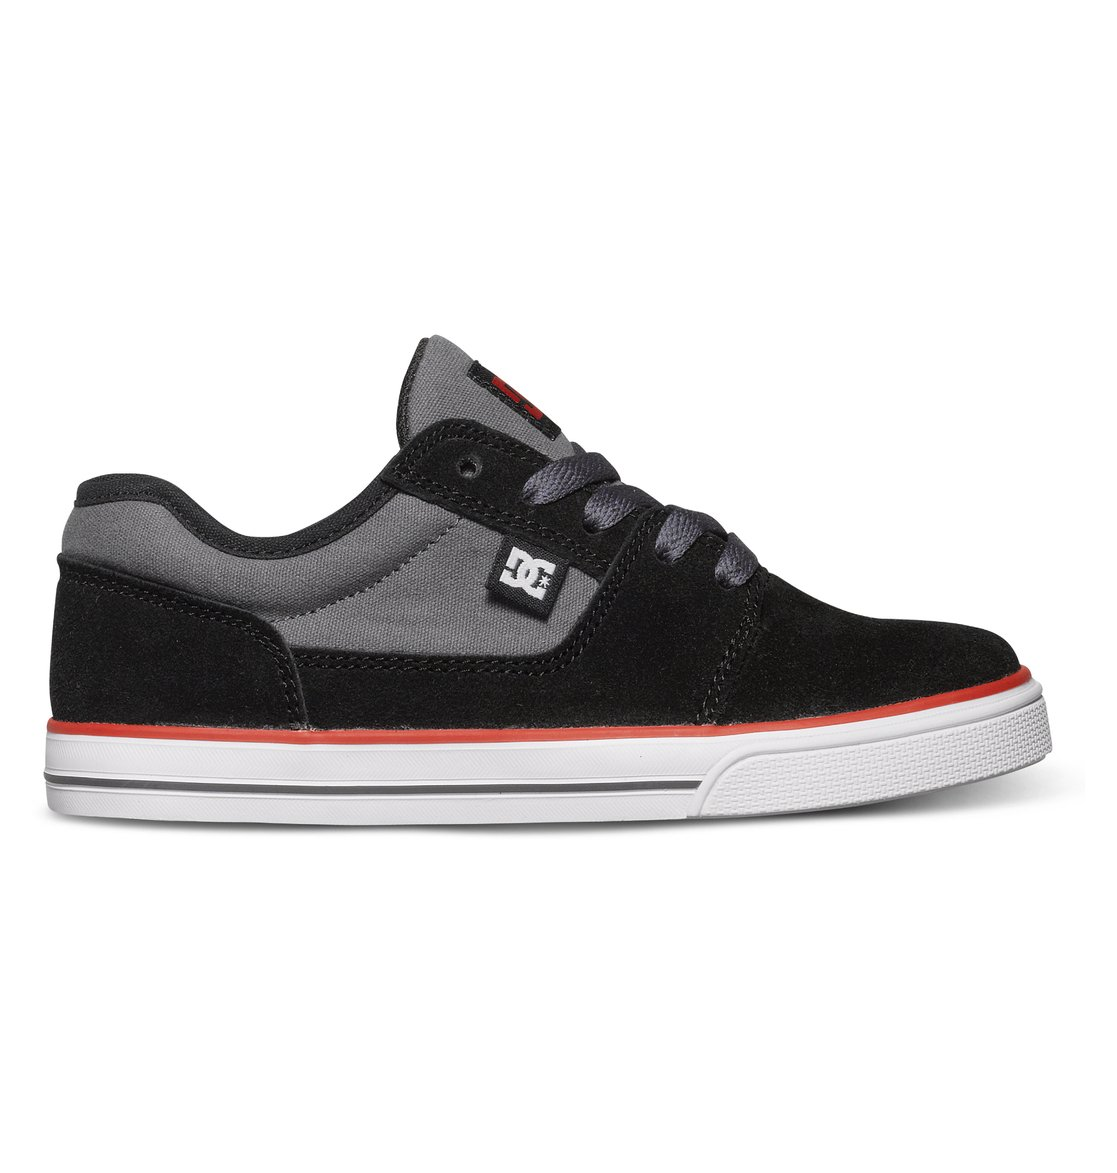 Tonik - Dcshoes������ ���� Tonik �� DC Shoes ��� ������� � ������� �� ��������� ����� 2015�. ��������������: ����������������� �����������, ������������� ���������� �������, ��������� ������� ���������� ������� DC Pill Pattern.<br>